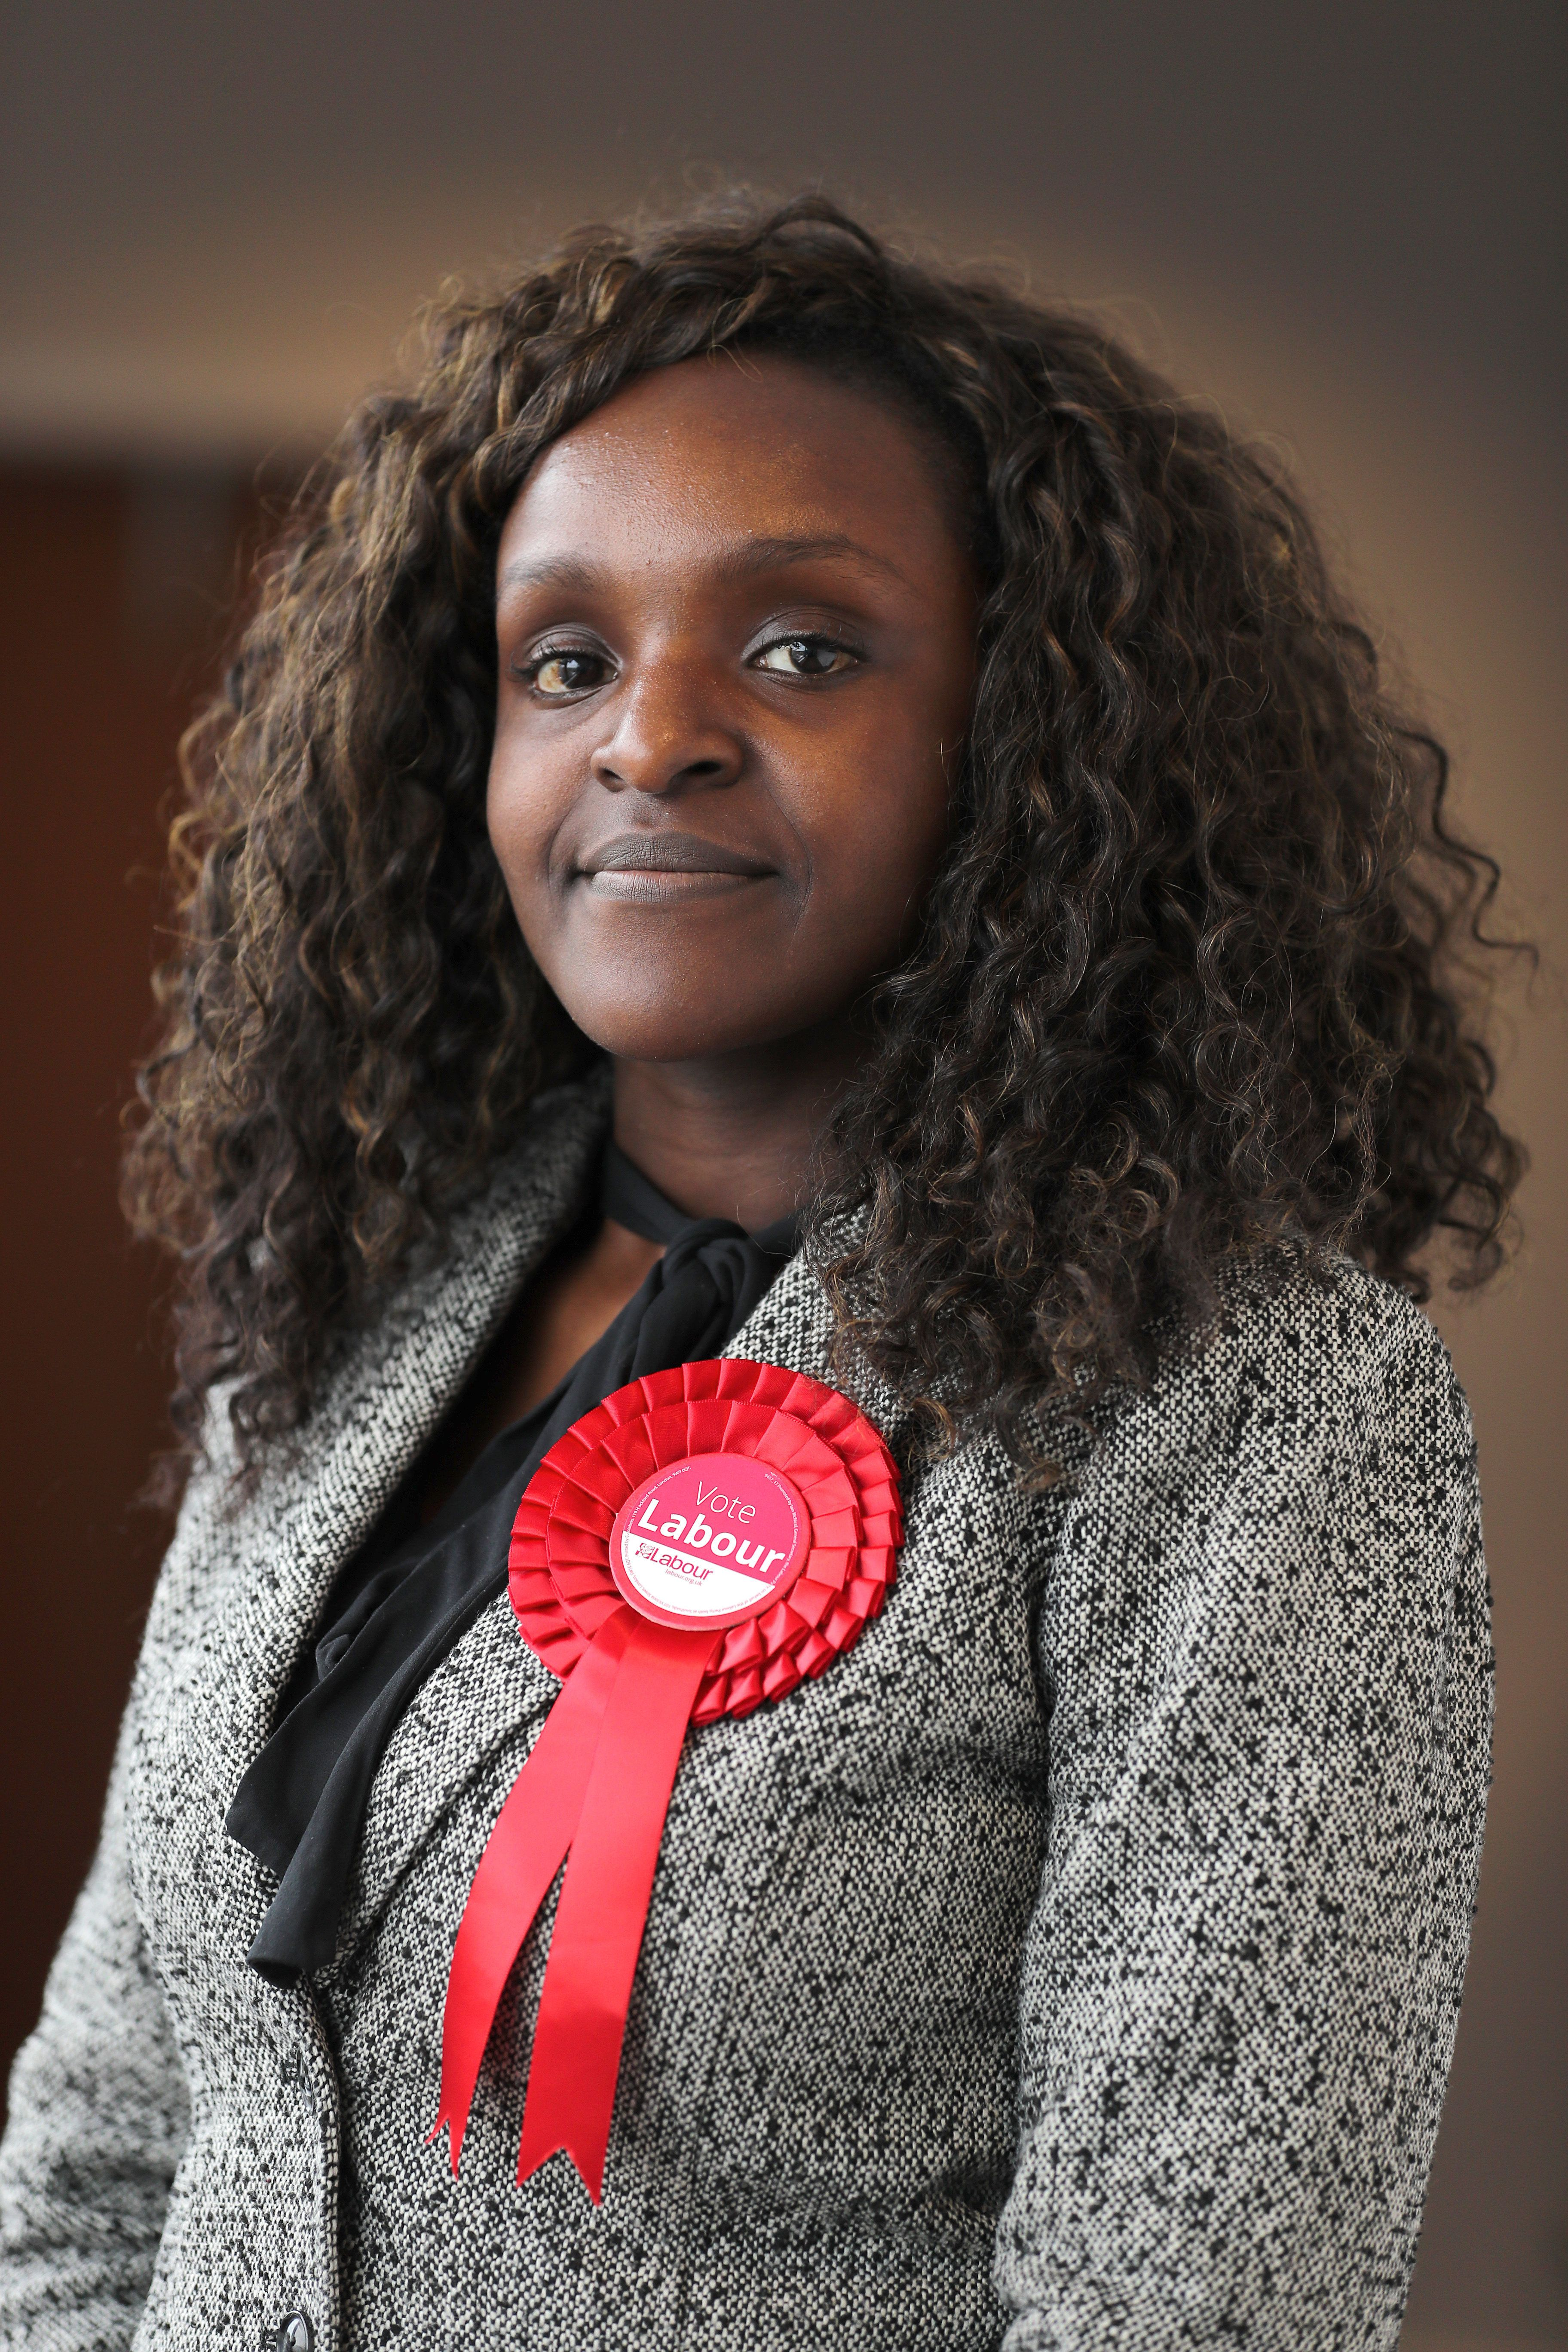 Labour MP Fiona Onasanya Charged With Perverting Course Of